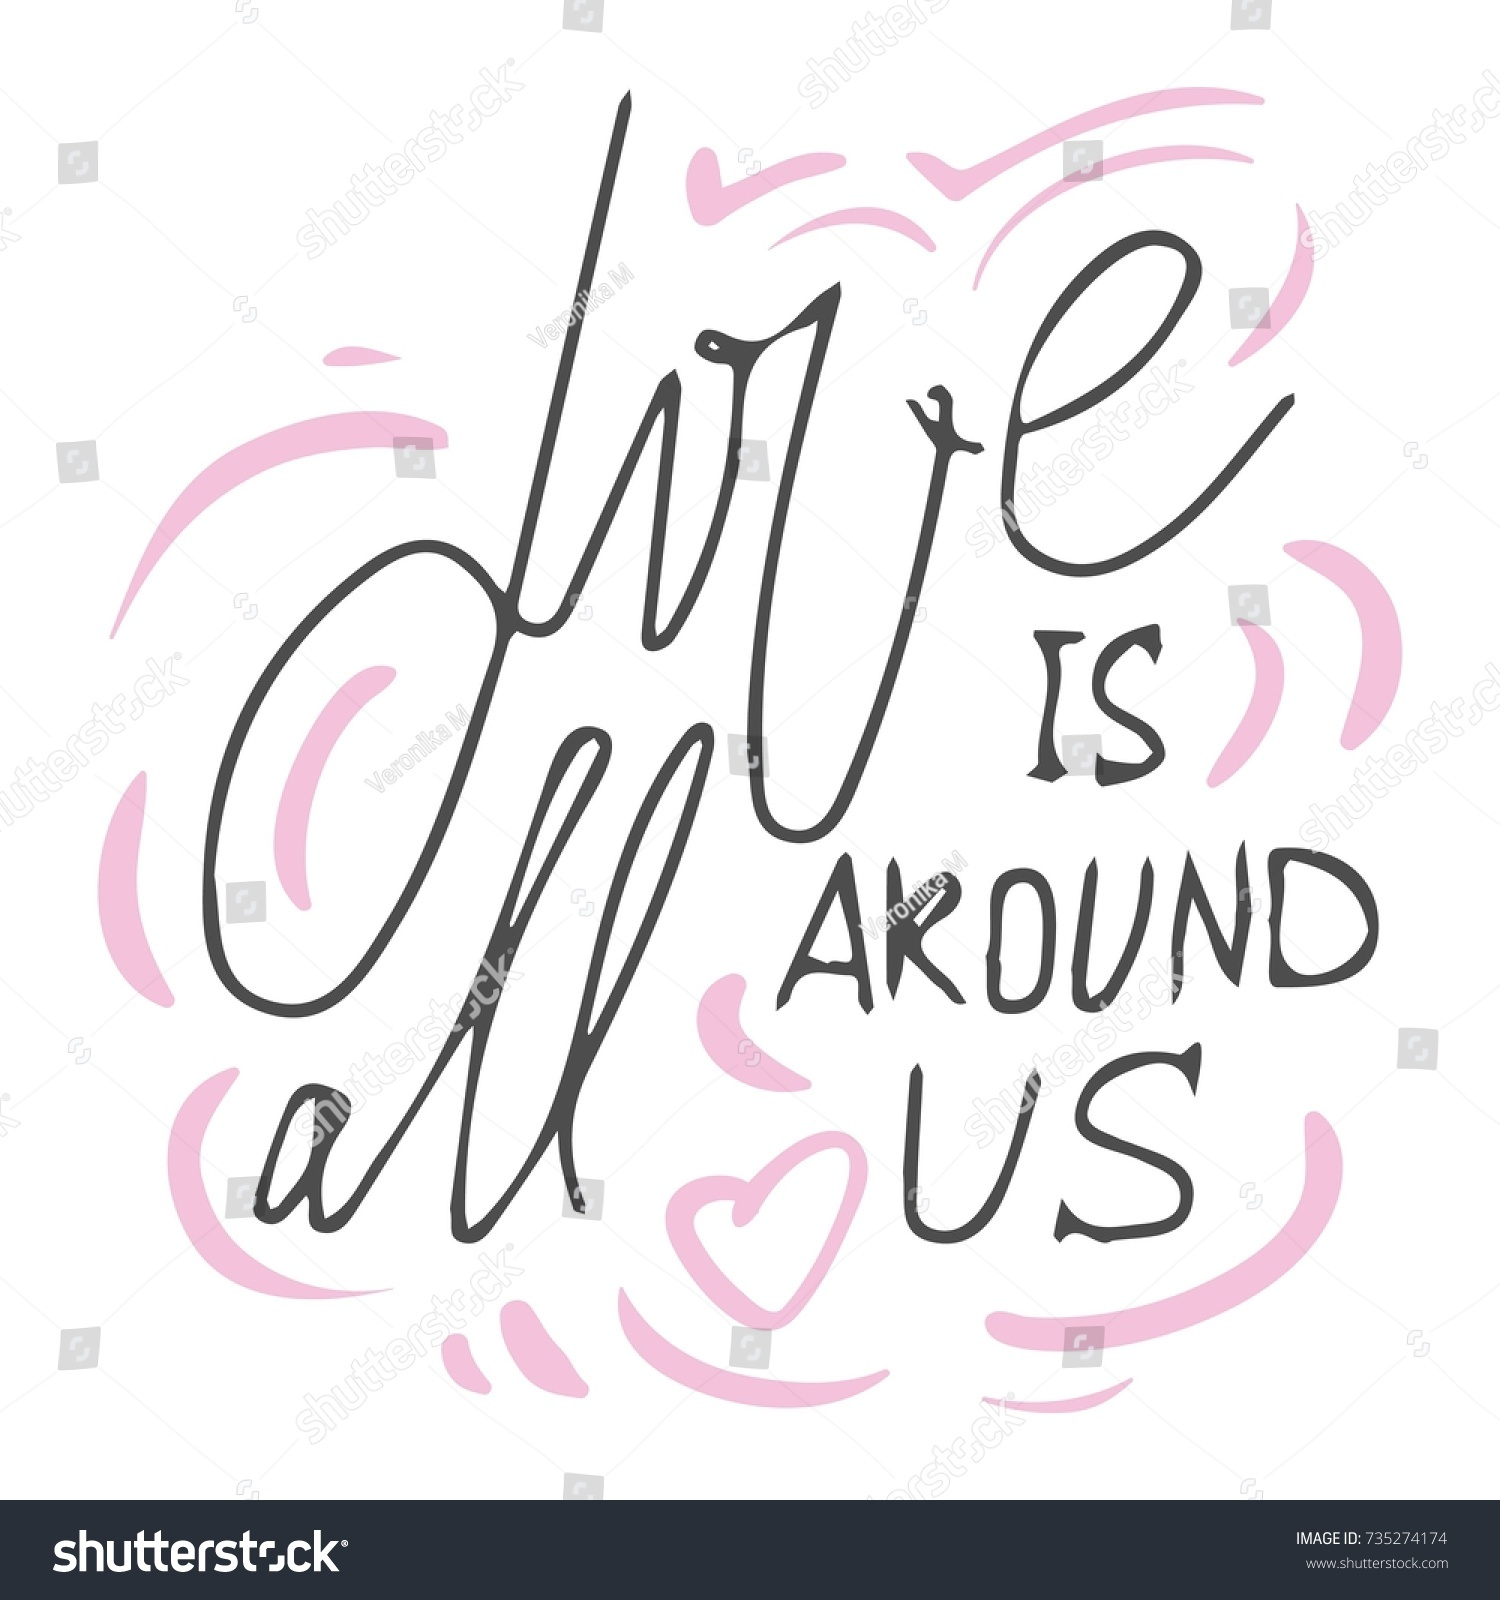 Love Quotes For Us Love All Around Us Motivational Quotes Stock Vector 735274174